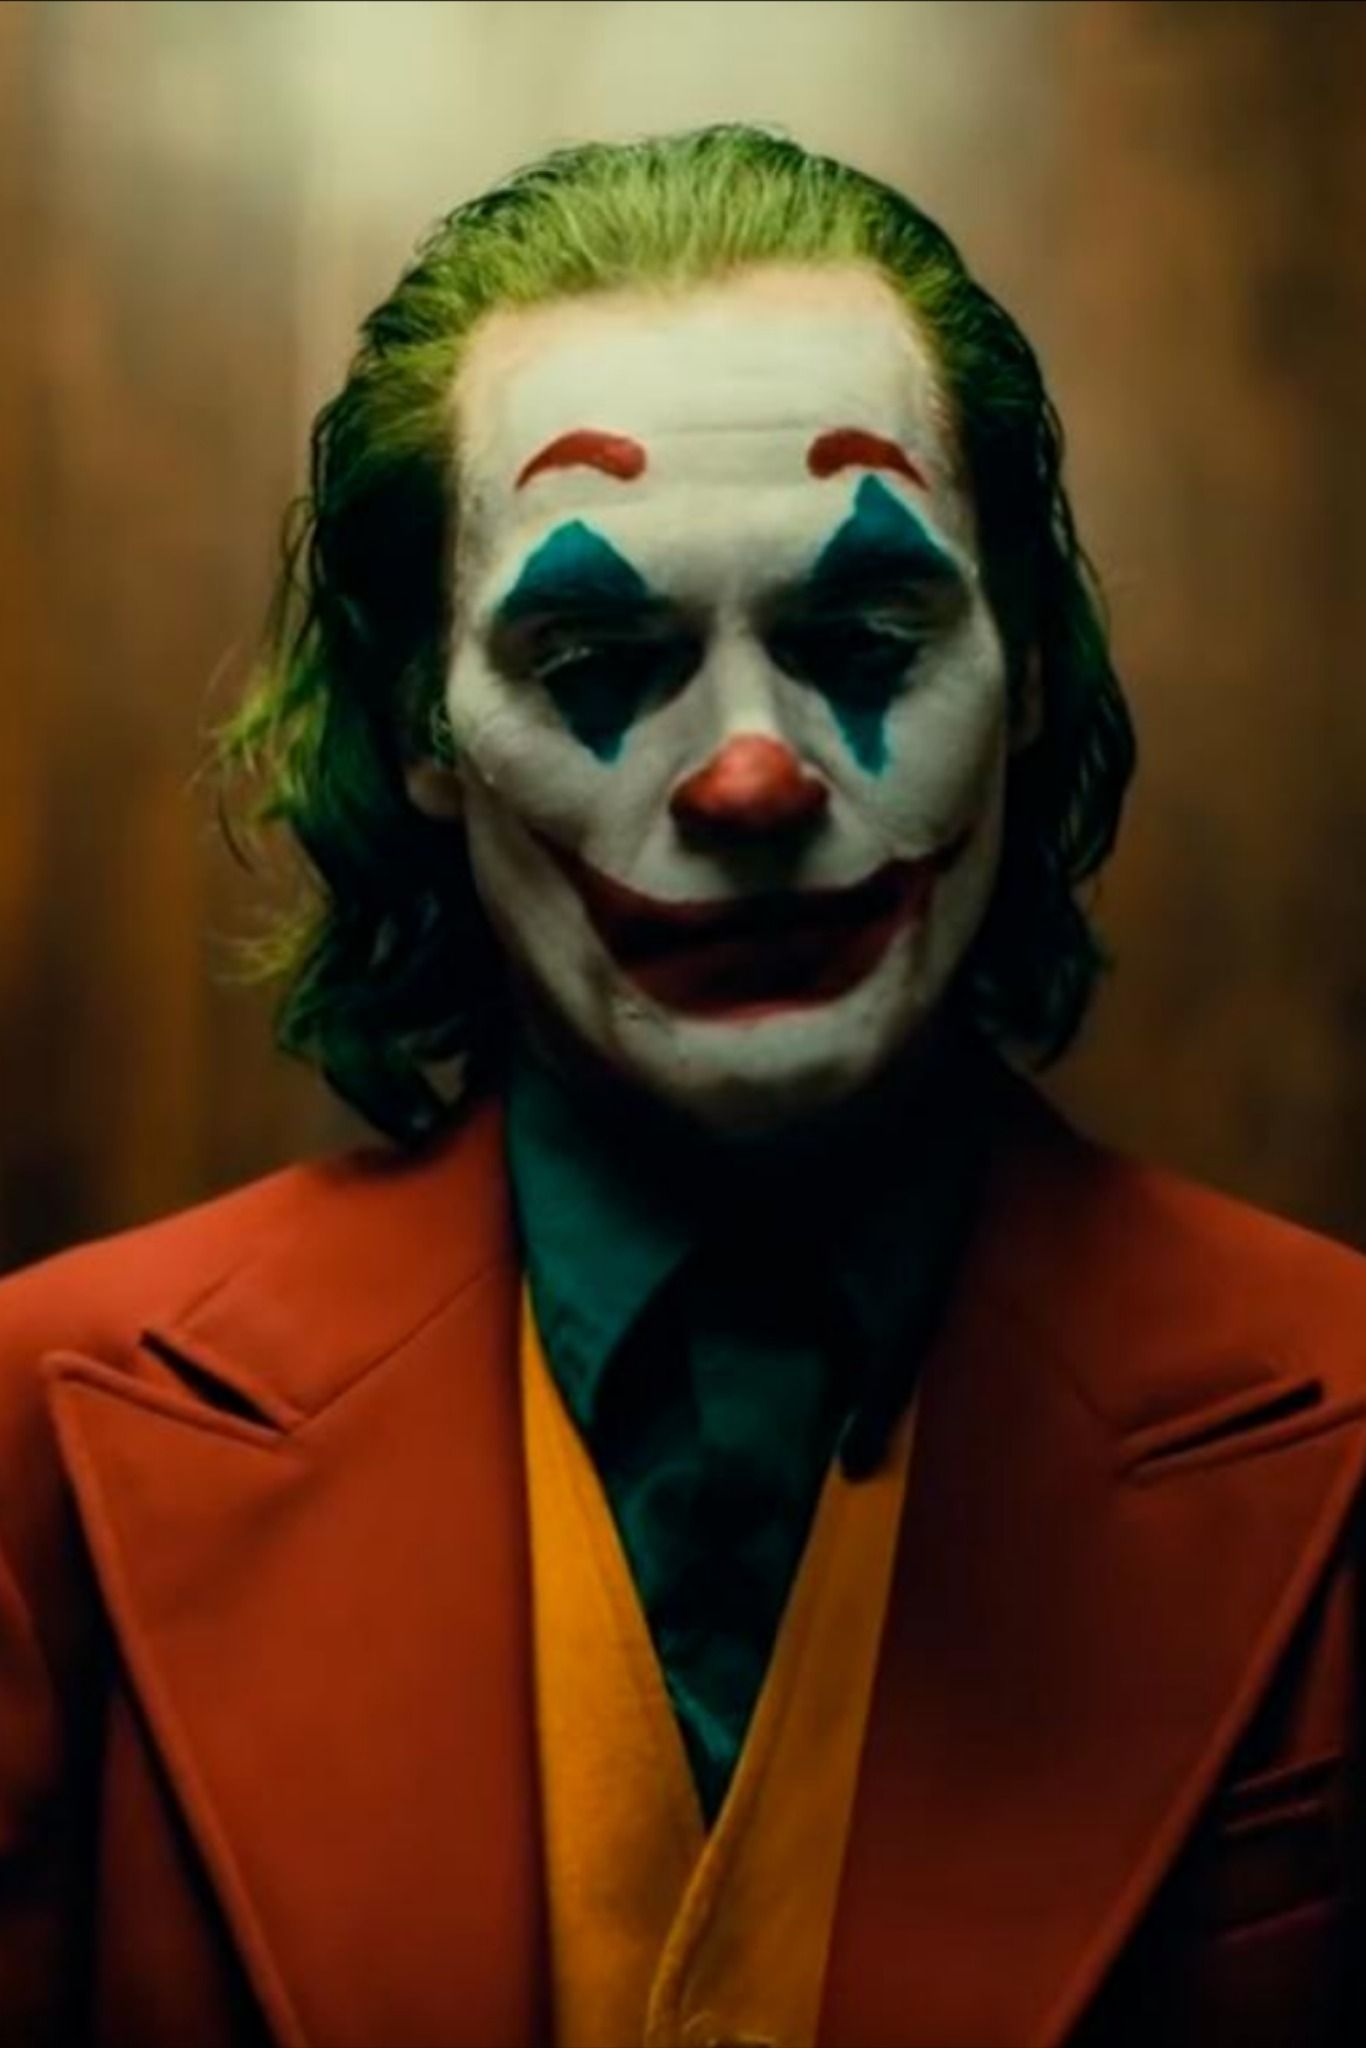 Joker Smiles And Put Your Best Face Forward Joker Hd Wallpaper Joker Joker Wallpapers